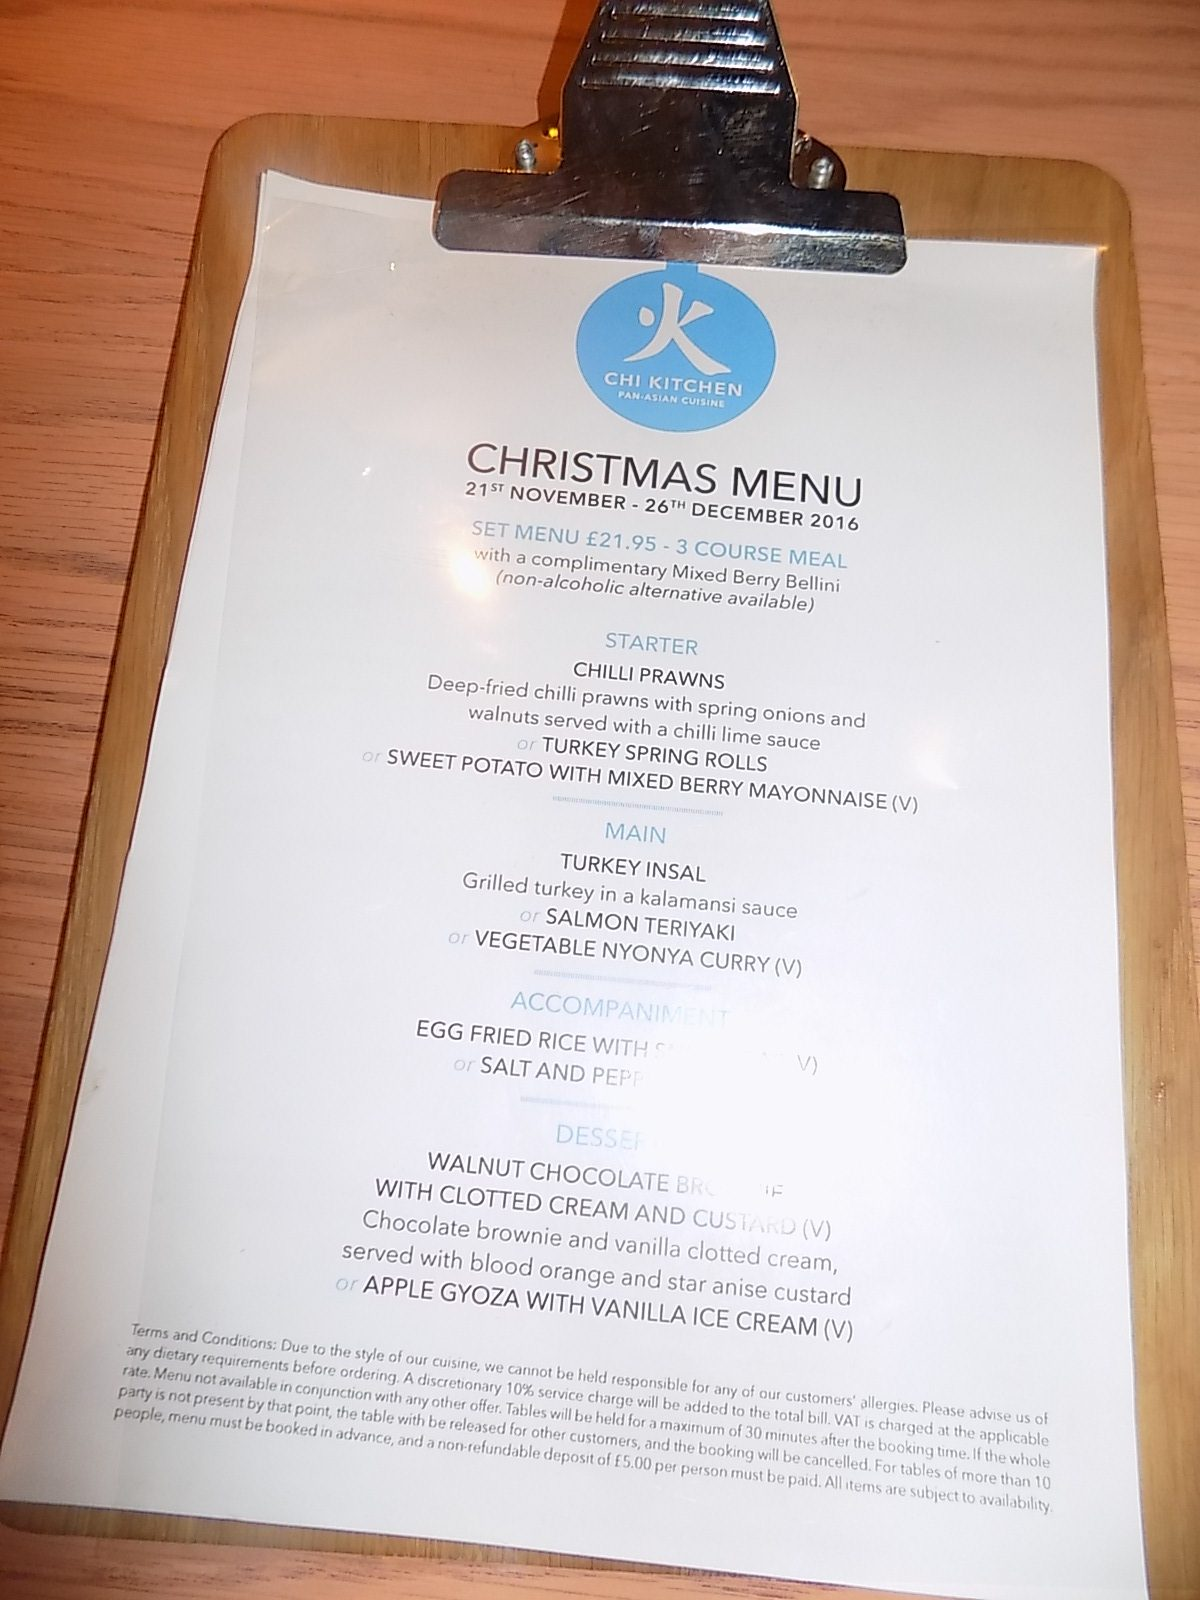 Chi Kitchen have a new Christmas Menu | fashionmommy\'s Blog